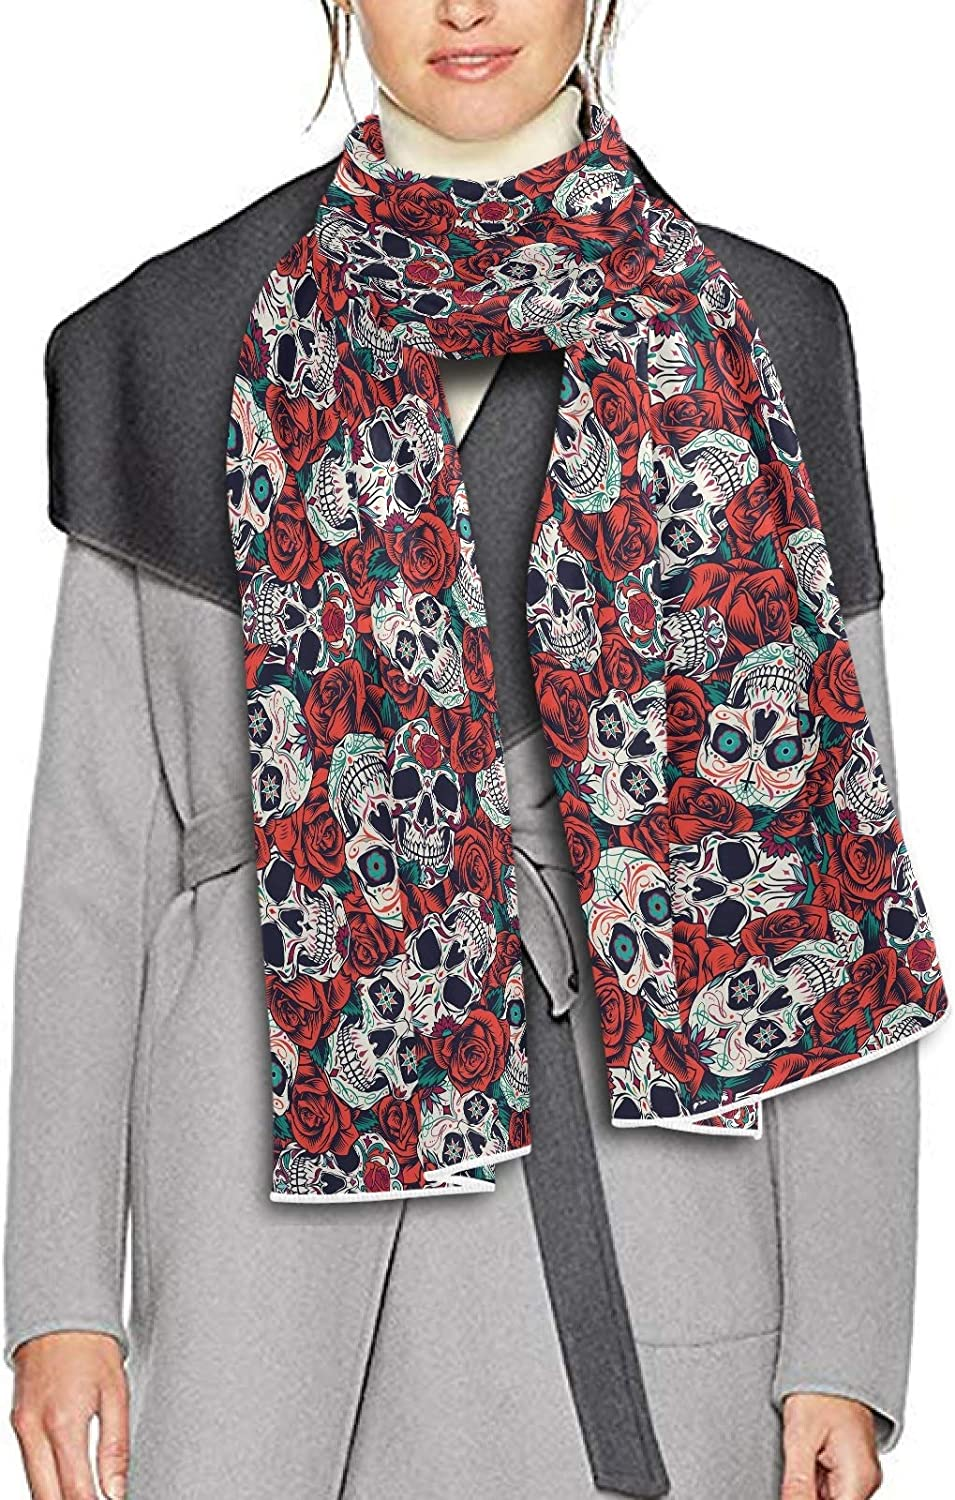 Scarf for Women and Men Skeleton And Rose Shawls Blanket Scarf wraps Warm soft Winter Long Scarves Lightweight